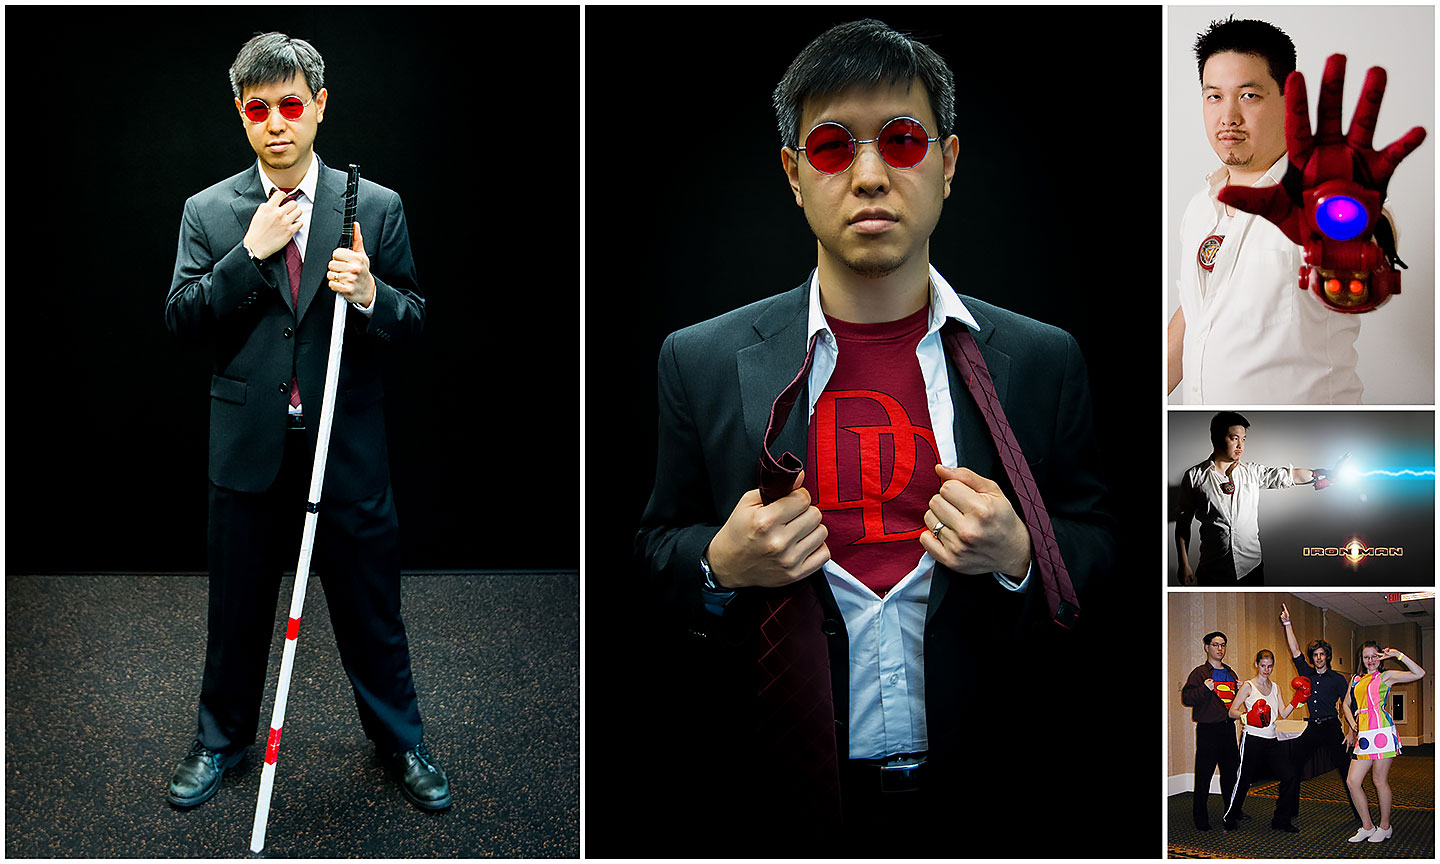 Collage of my superhero alter-ego costumes: Matt Murdock (Daredevil), Tony Stark (Iron Man), and Clark Kent (Superman)